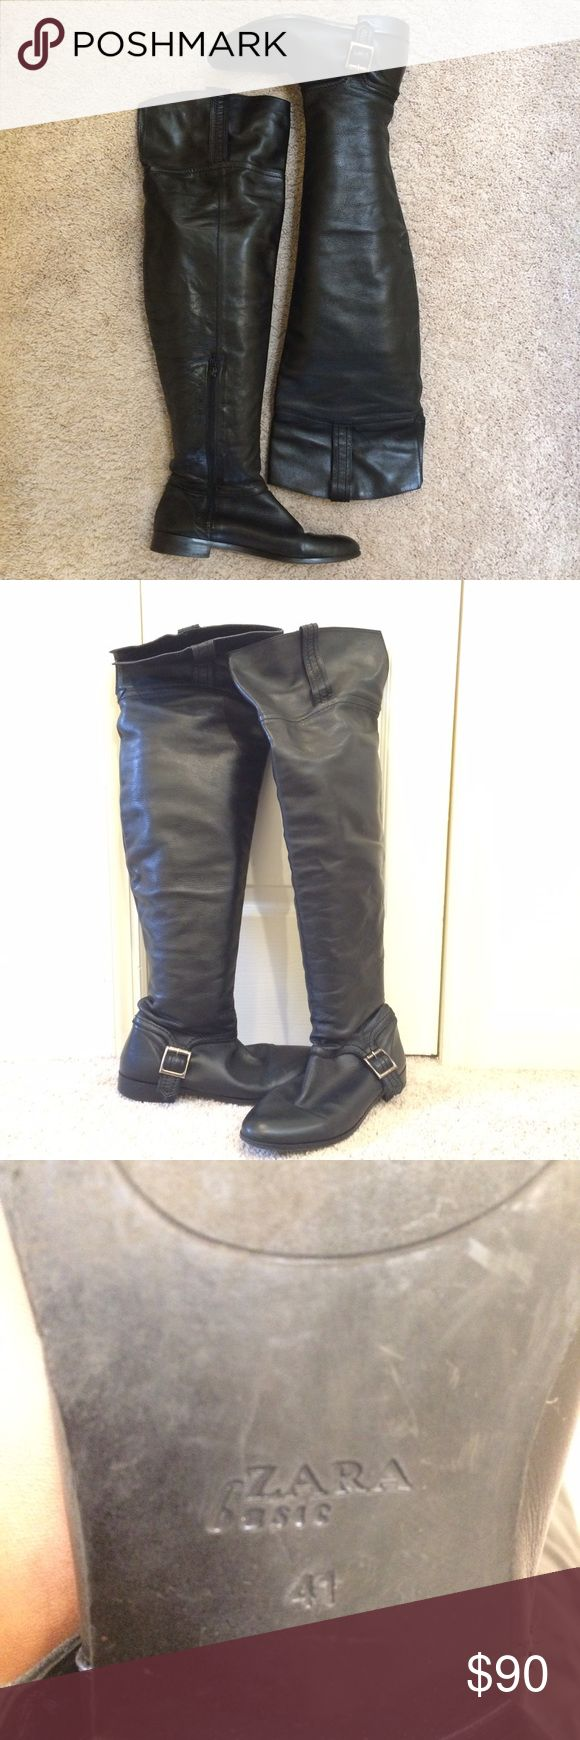 Leather Zara women's over the knee boots 41 Great condition, black leather Zara over the knee boots. A must have for the season! Zara Shoes Over the Knee Boots